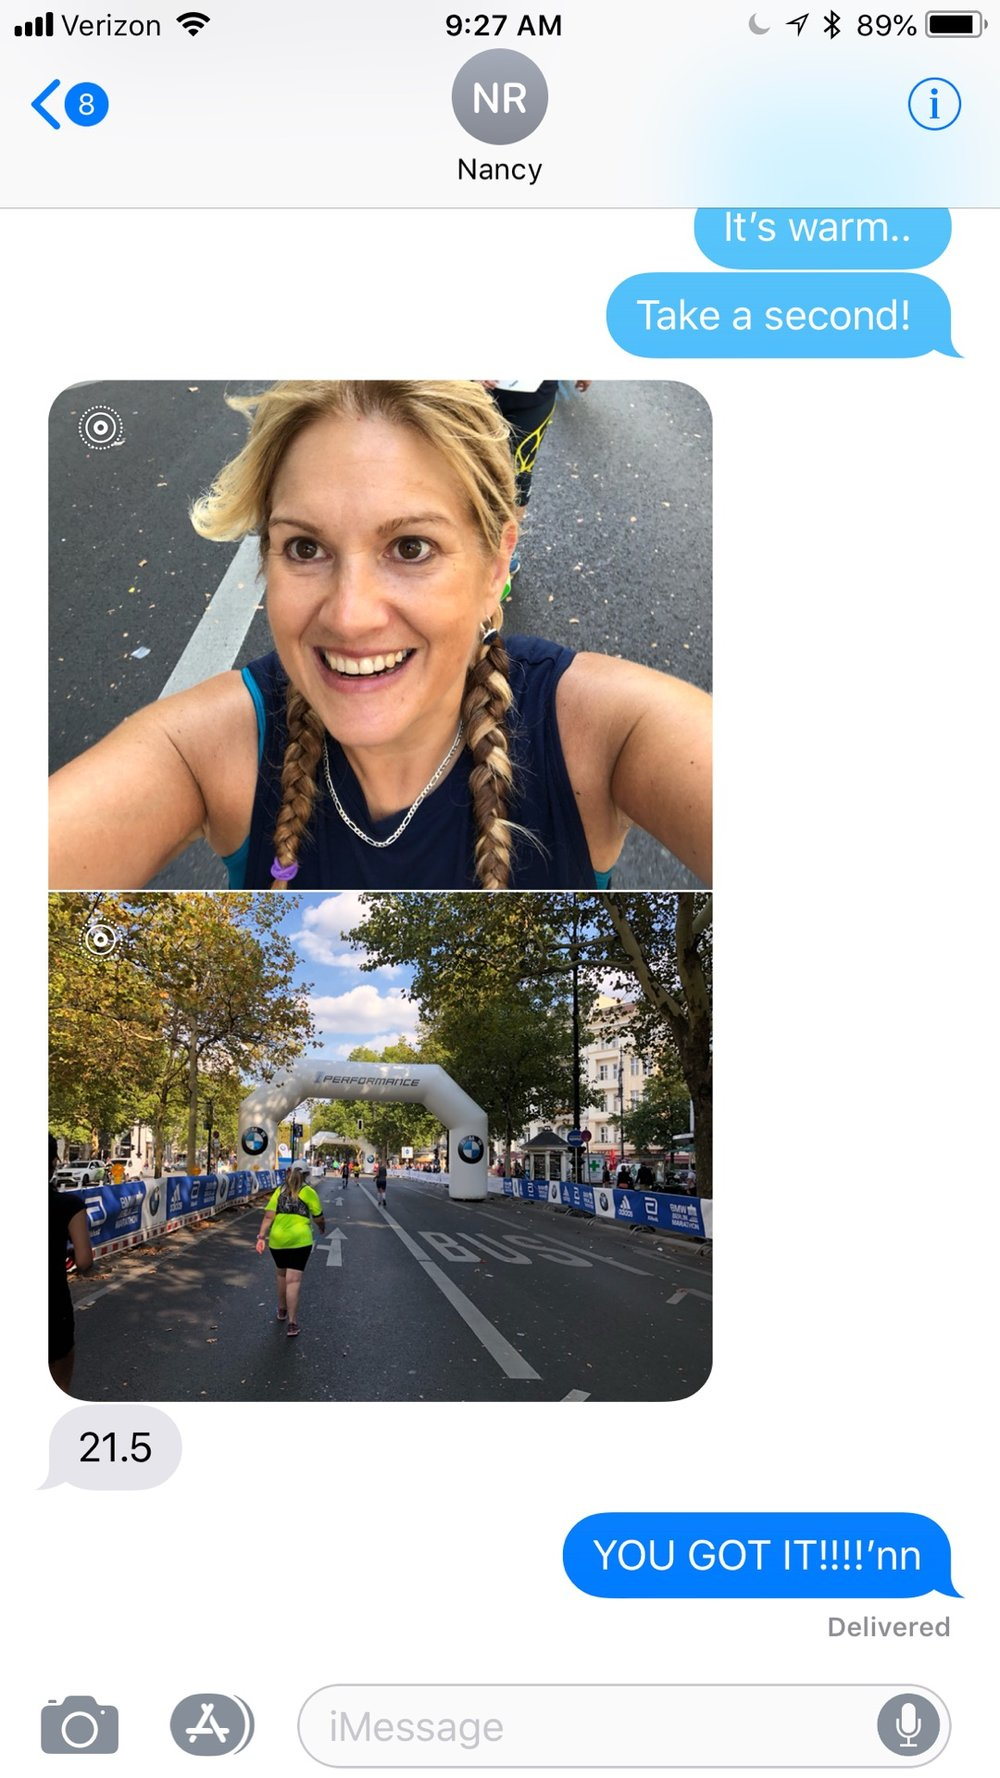 Nancy is infamous for sending pics and video's to Jessica while she's running a marathon ;)